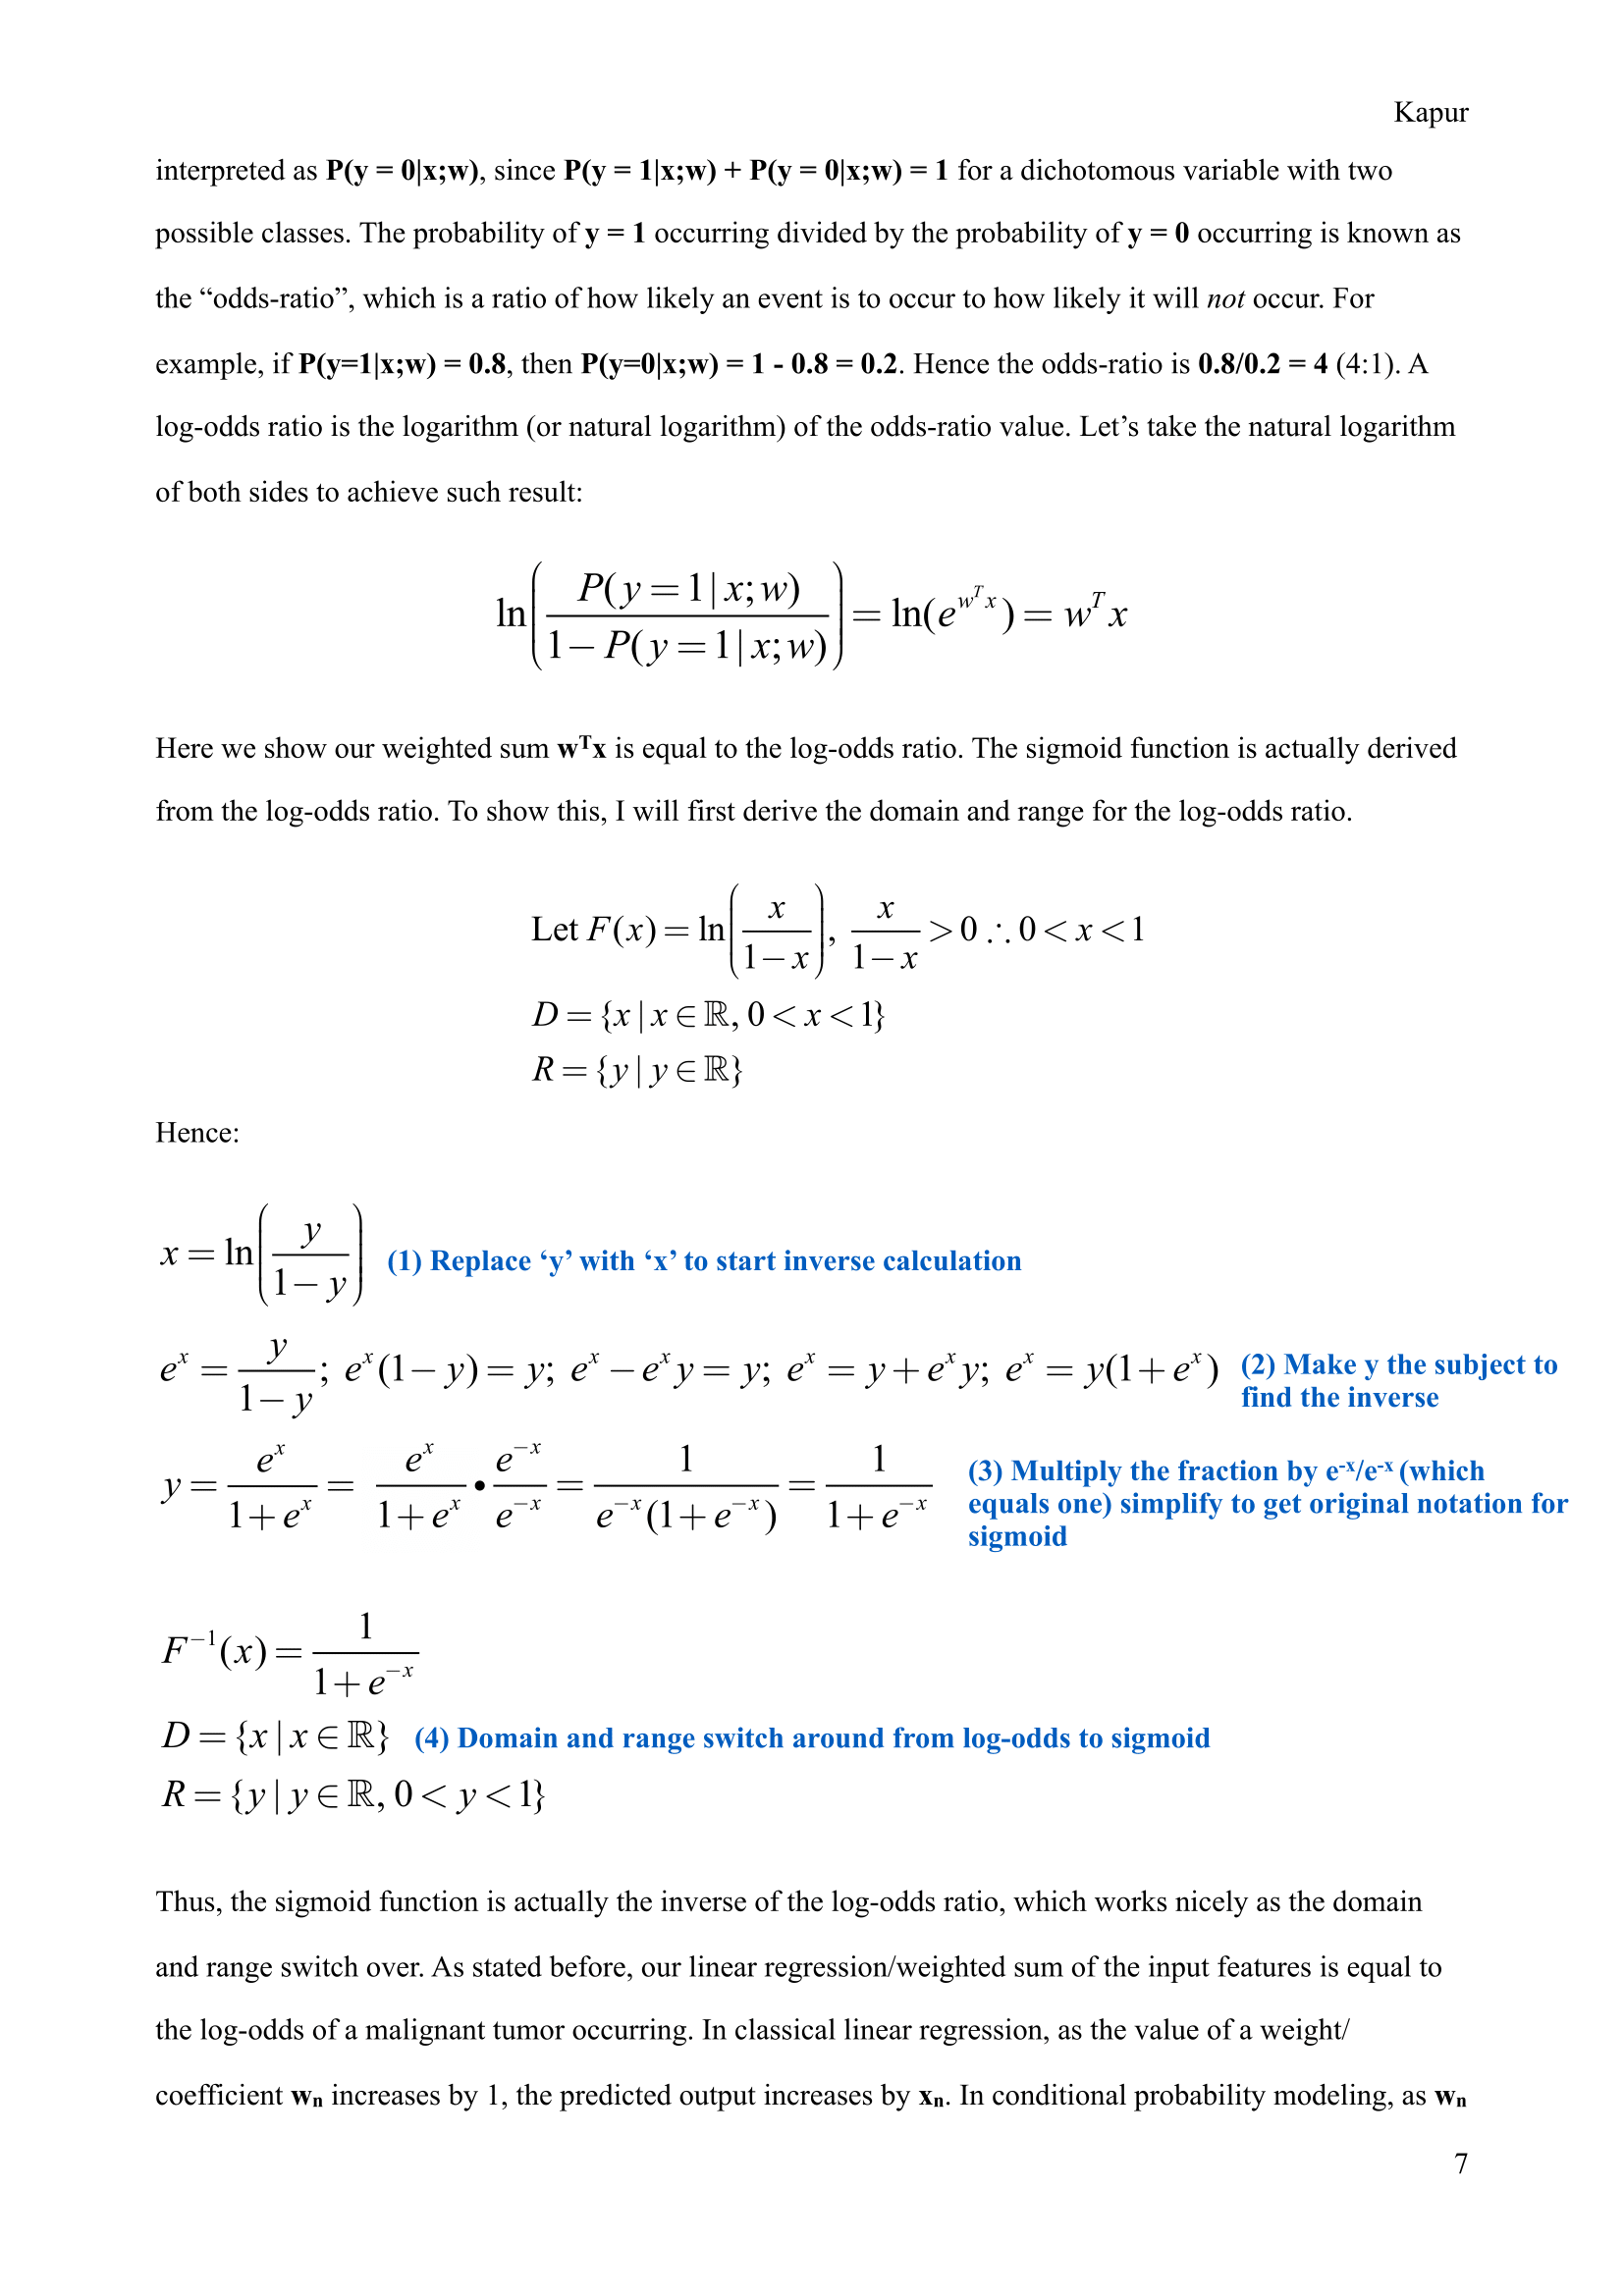 Rohan #6: The beautiful math behind logistic regression